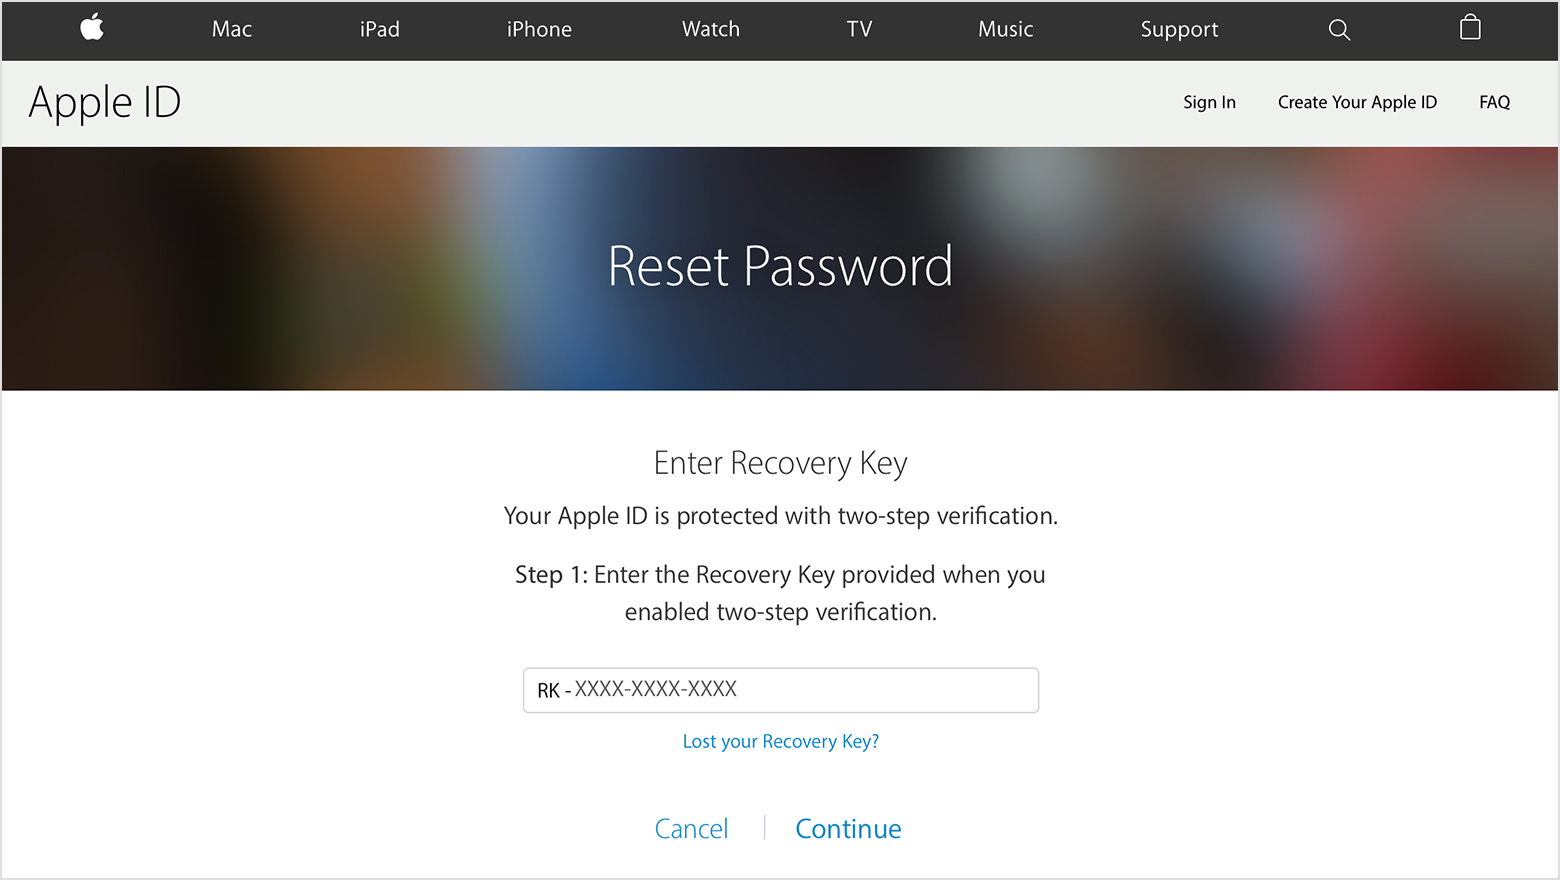 Enter Recovery Key Screen